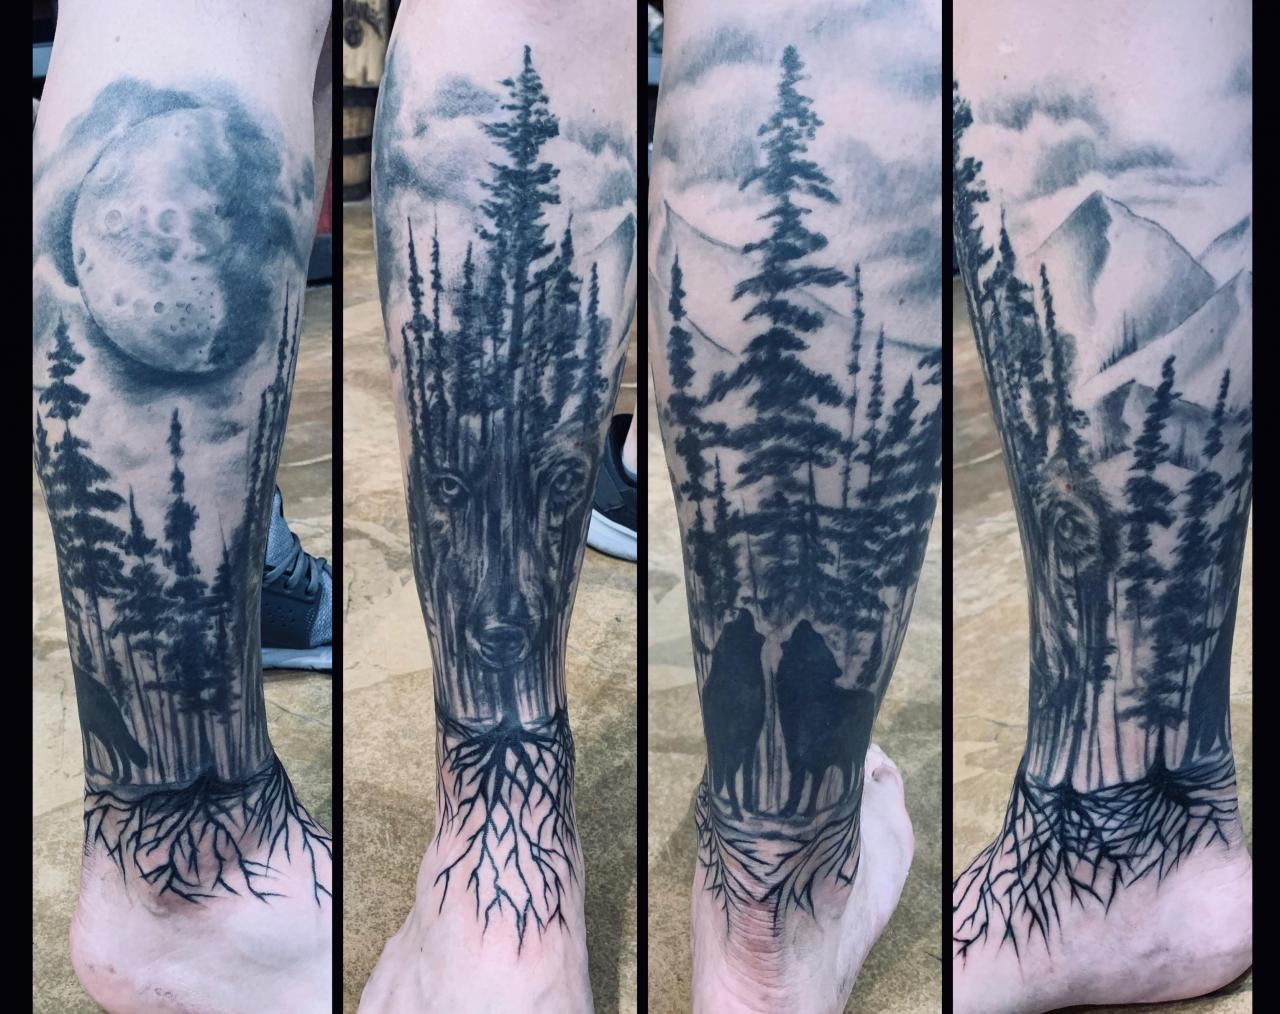 Leg Is finished, all by Brandee at Native Ink in Elwood, Indiana